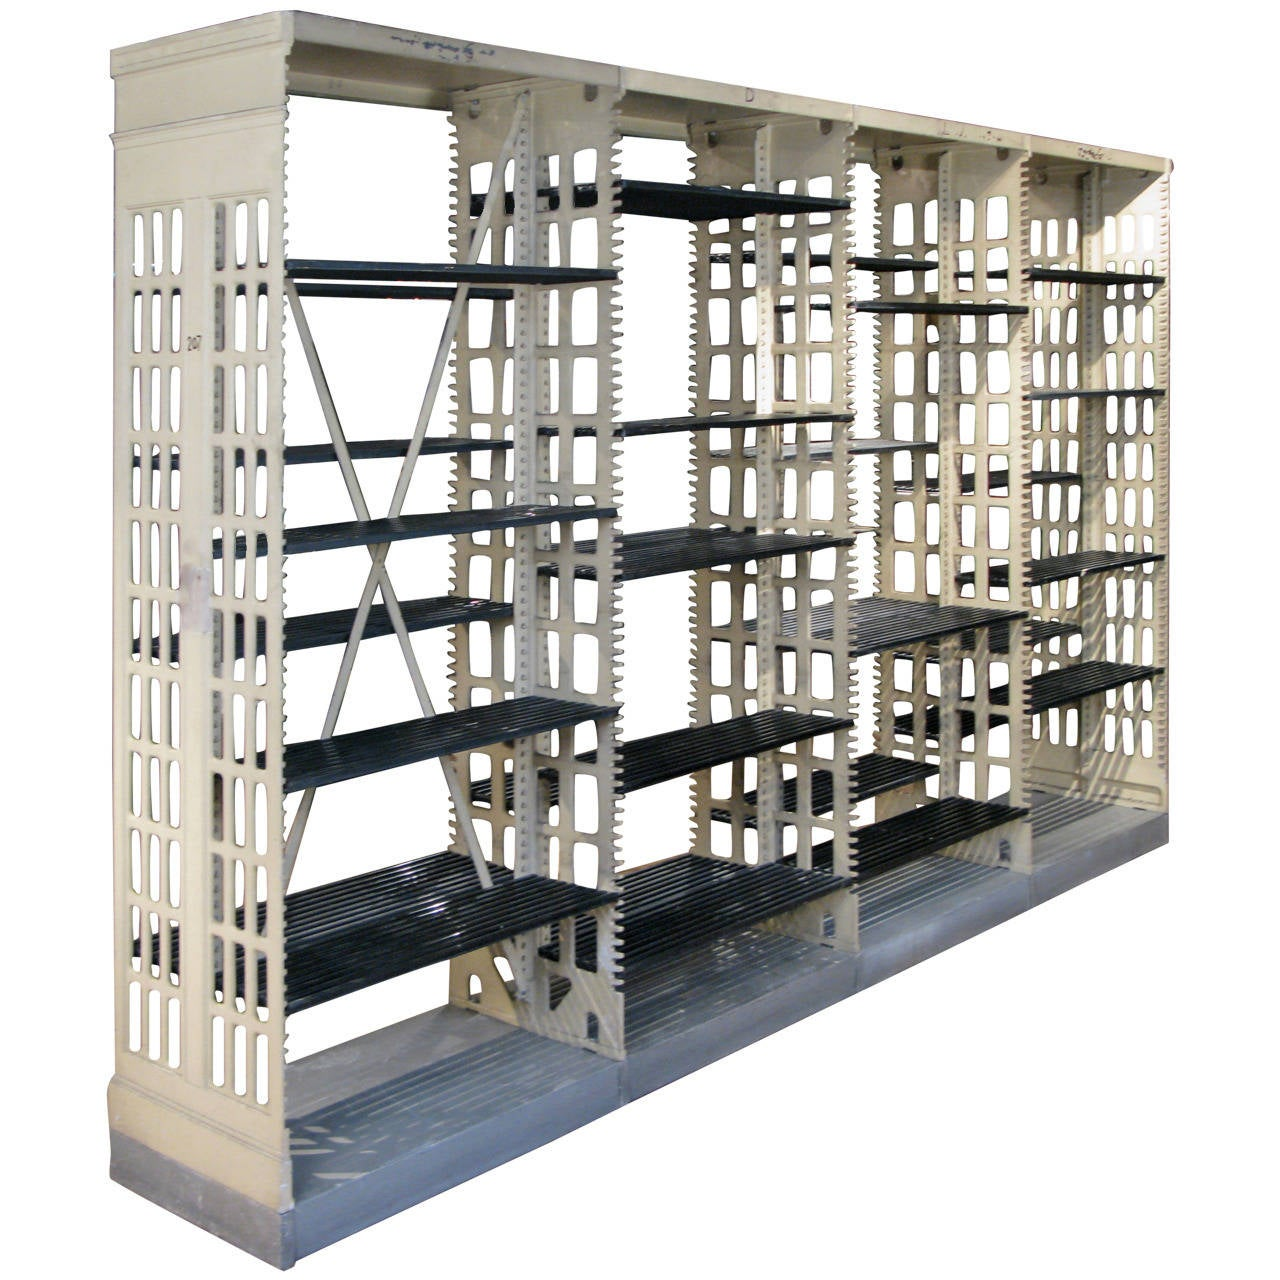 within and for large industrial pertaining unit gardens to motivate bookcase prepare bookcases plan lena mecox shelving bookshelf iron wood reclaimed metal shelves